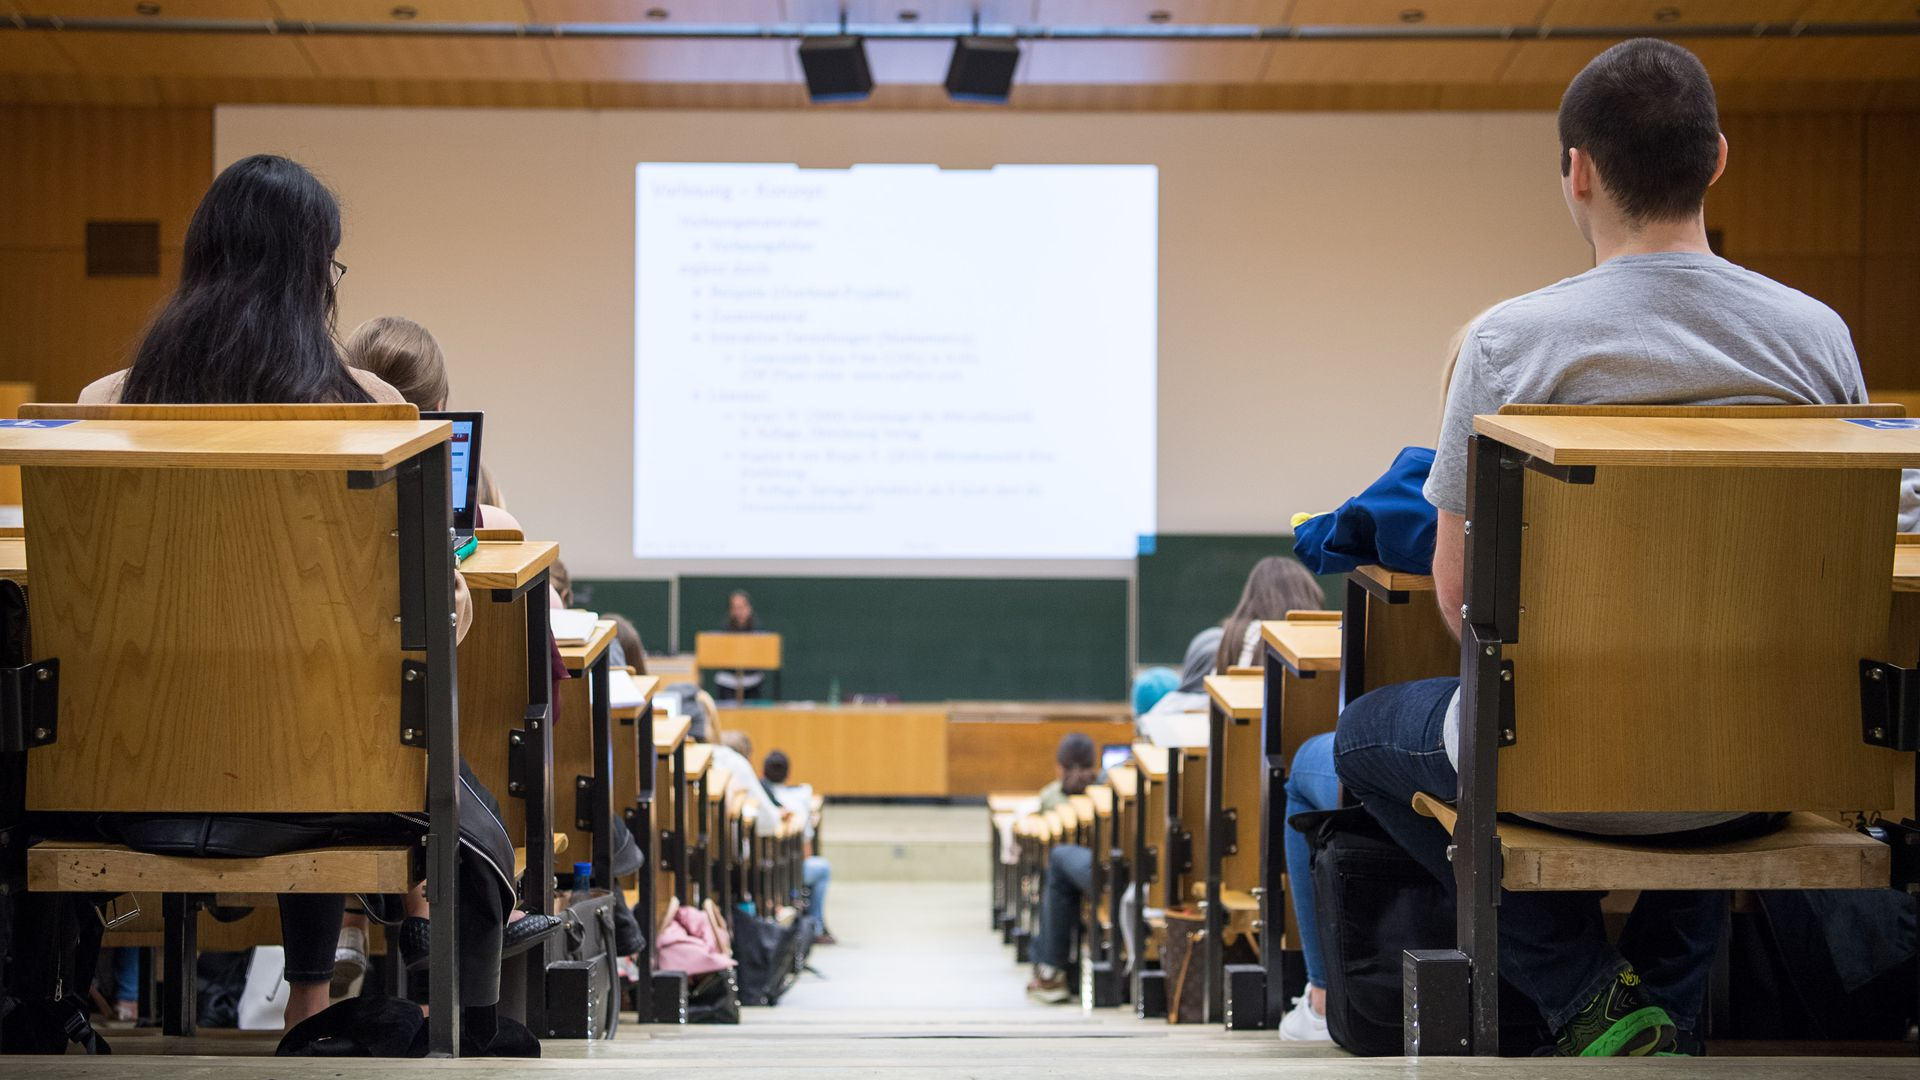 A photo of a full lecture hall from the back